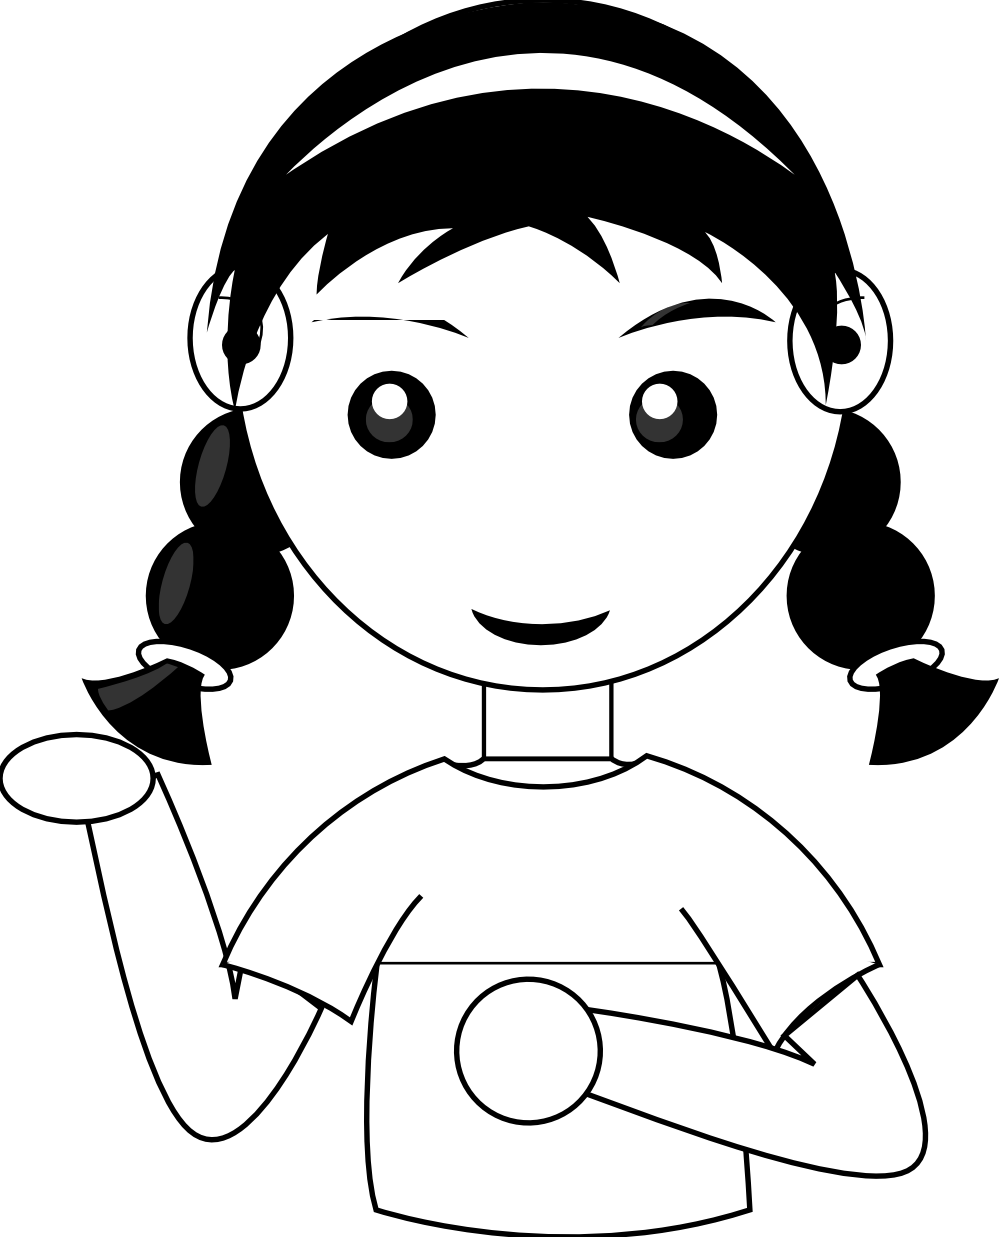 Boy girl face clipart black and white graphic black and white Png Boy And Girl Face Black And White & Free Boy And Girl Face Black ... graphic black and white